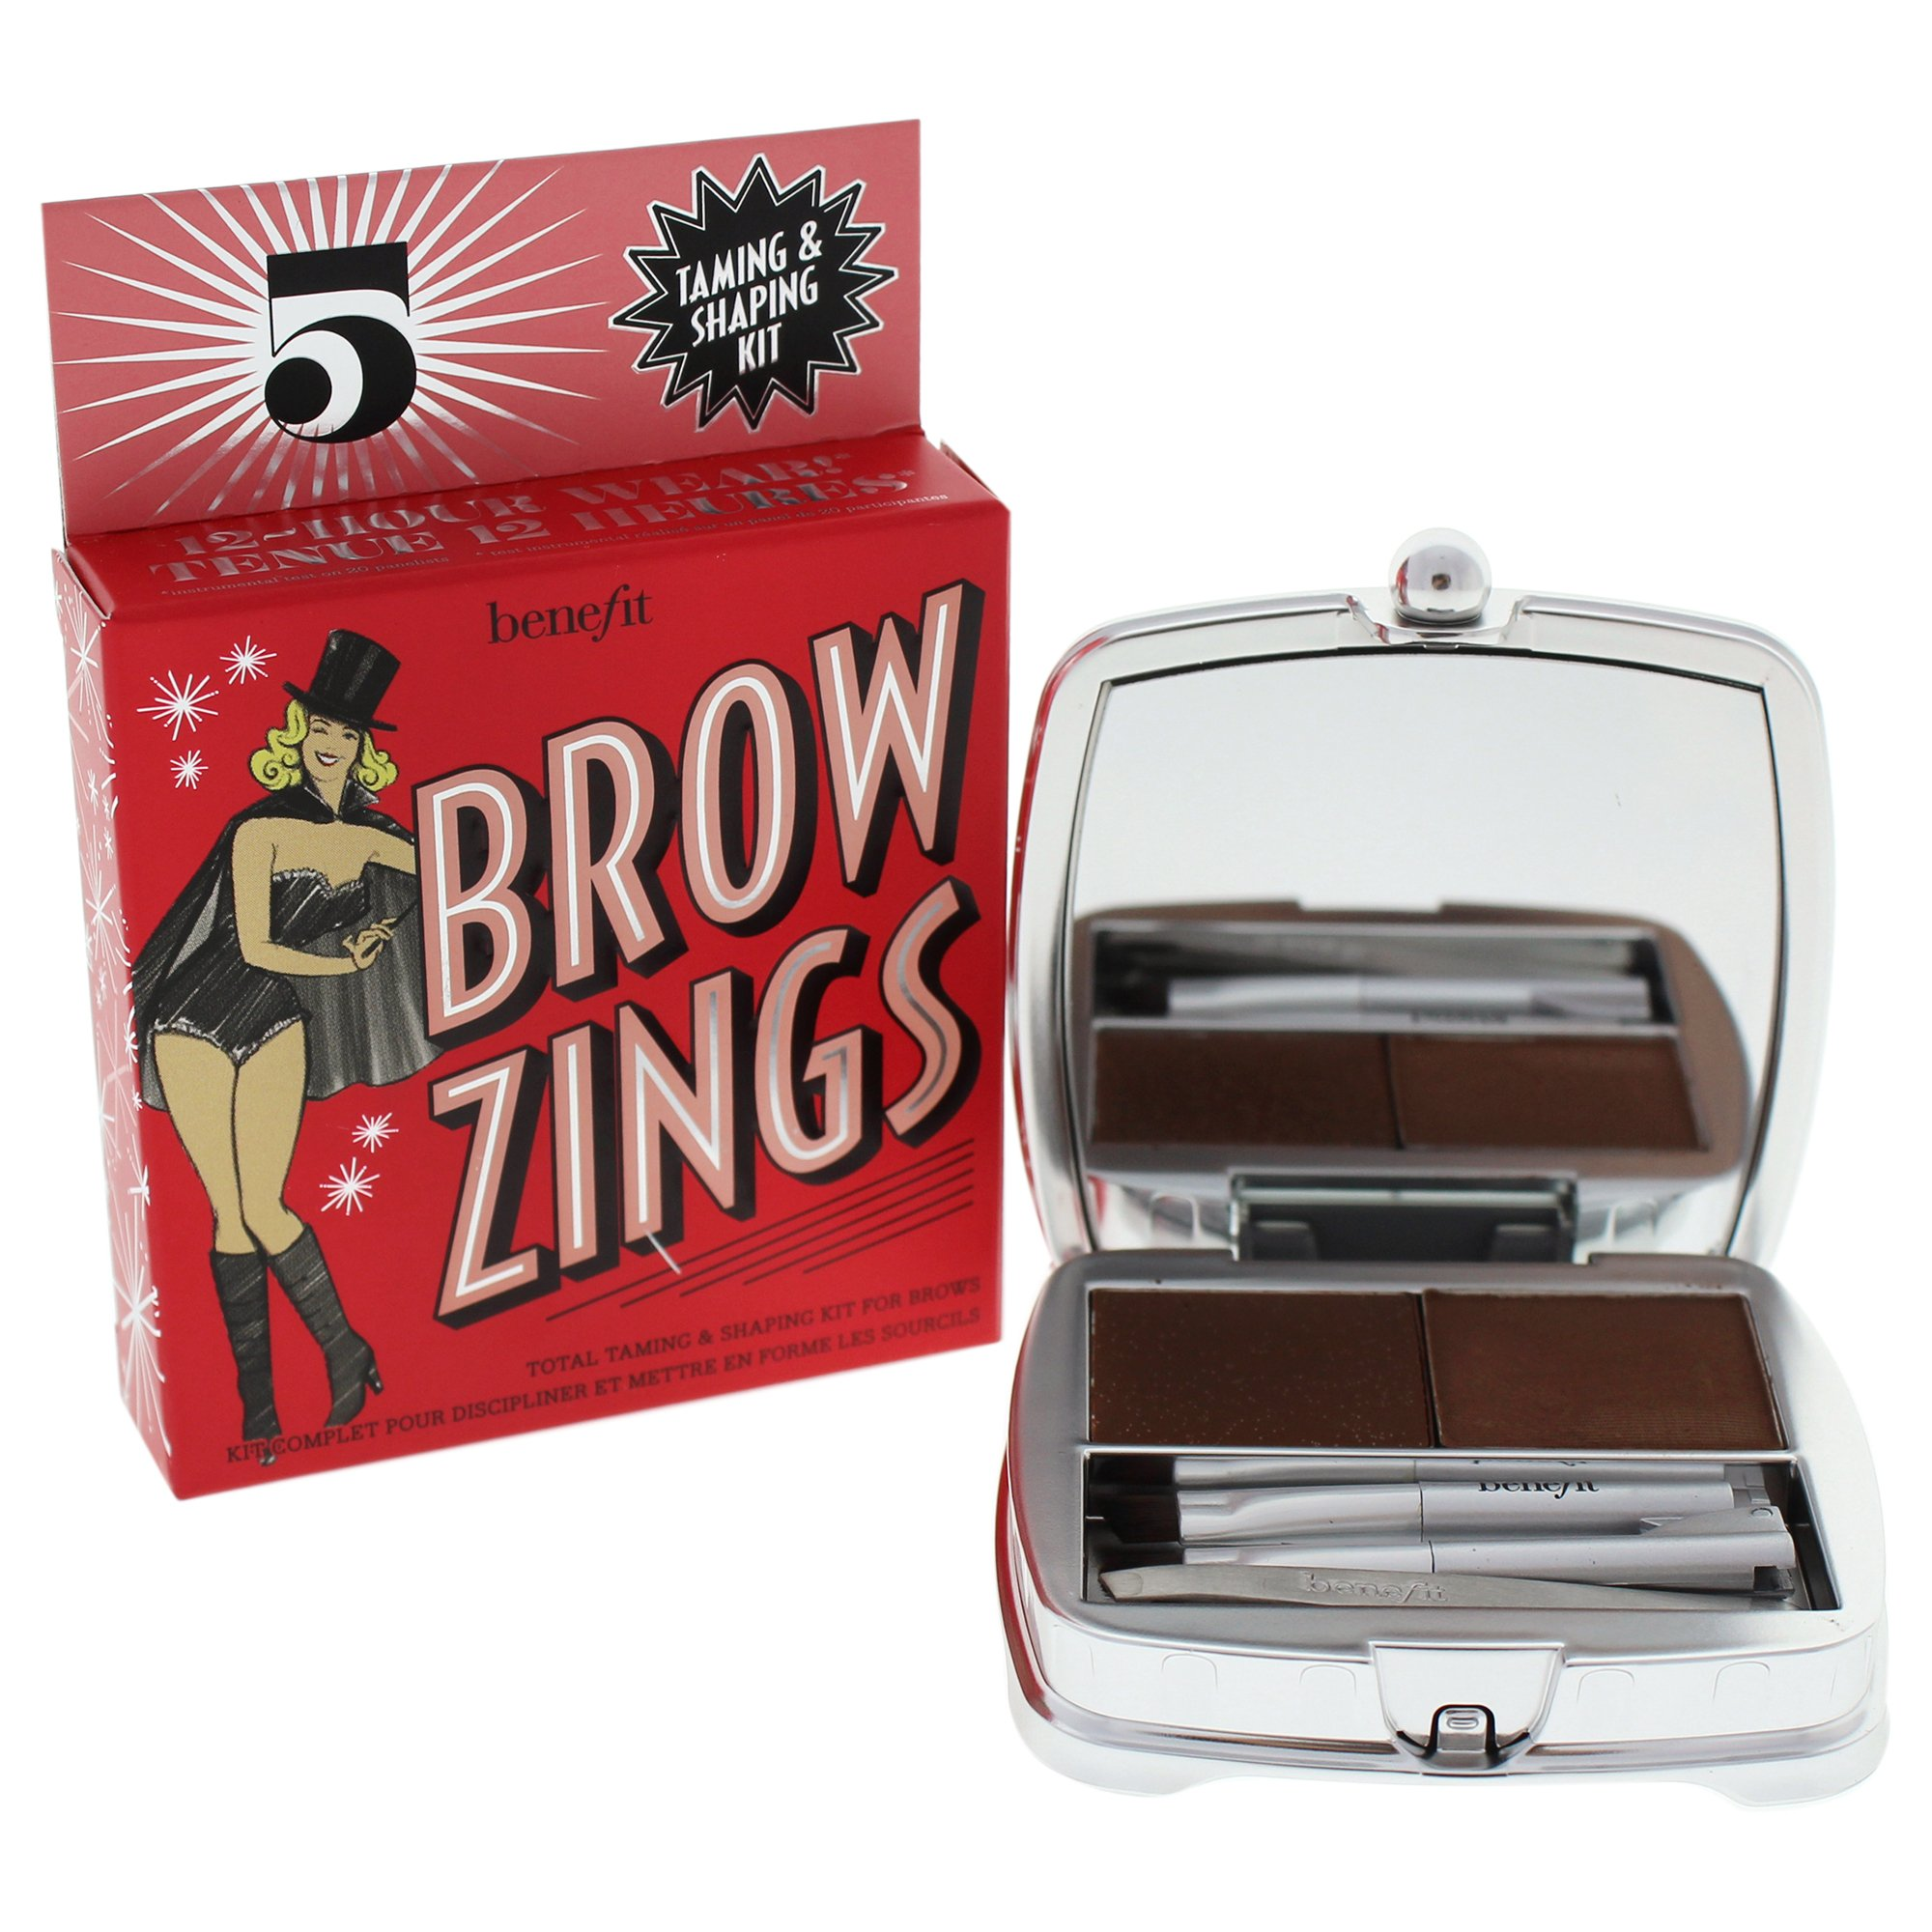 Benefit Brow Zings Total Taming and Shaping Kit, No. 5 Deep, 0.15 Ounce by Benefit